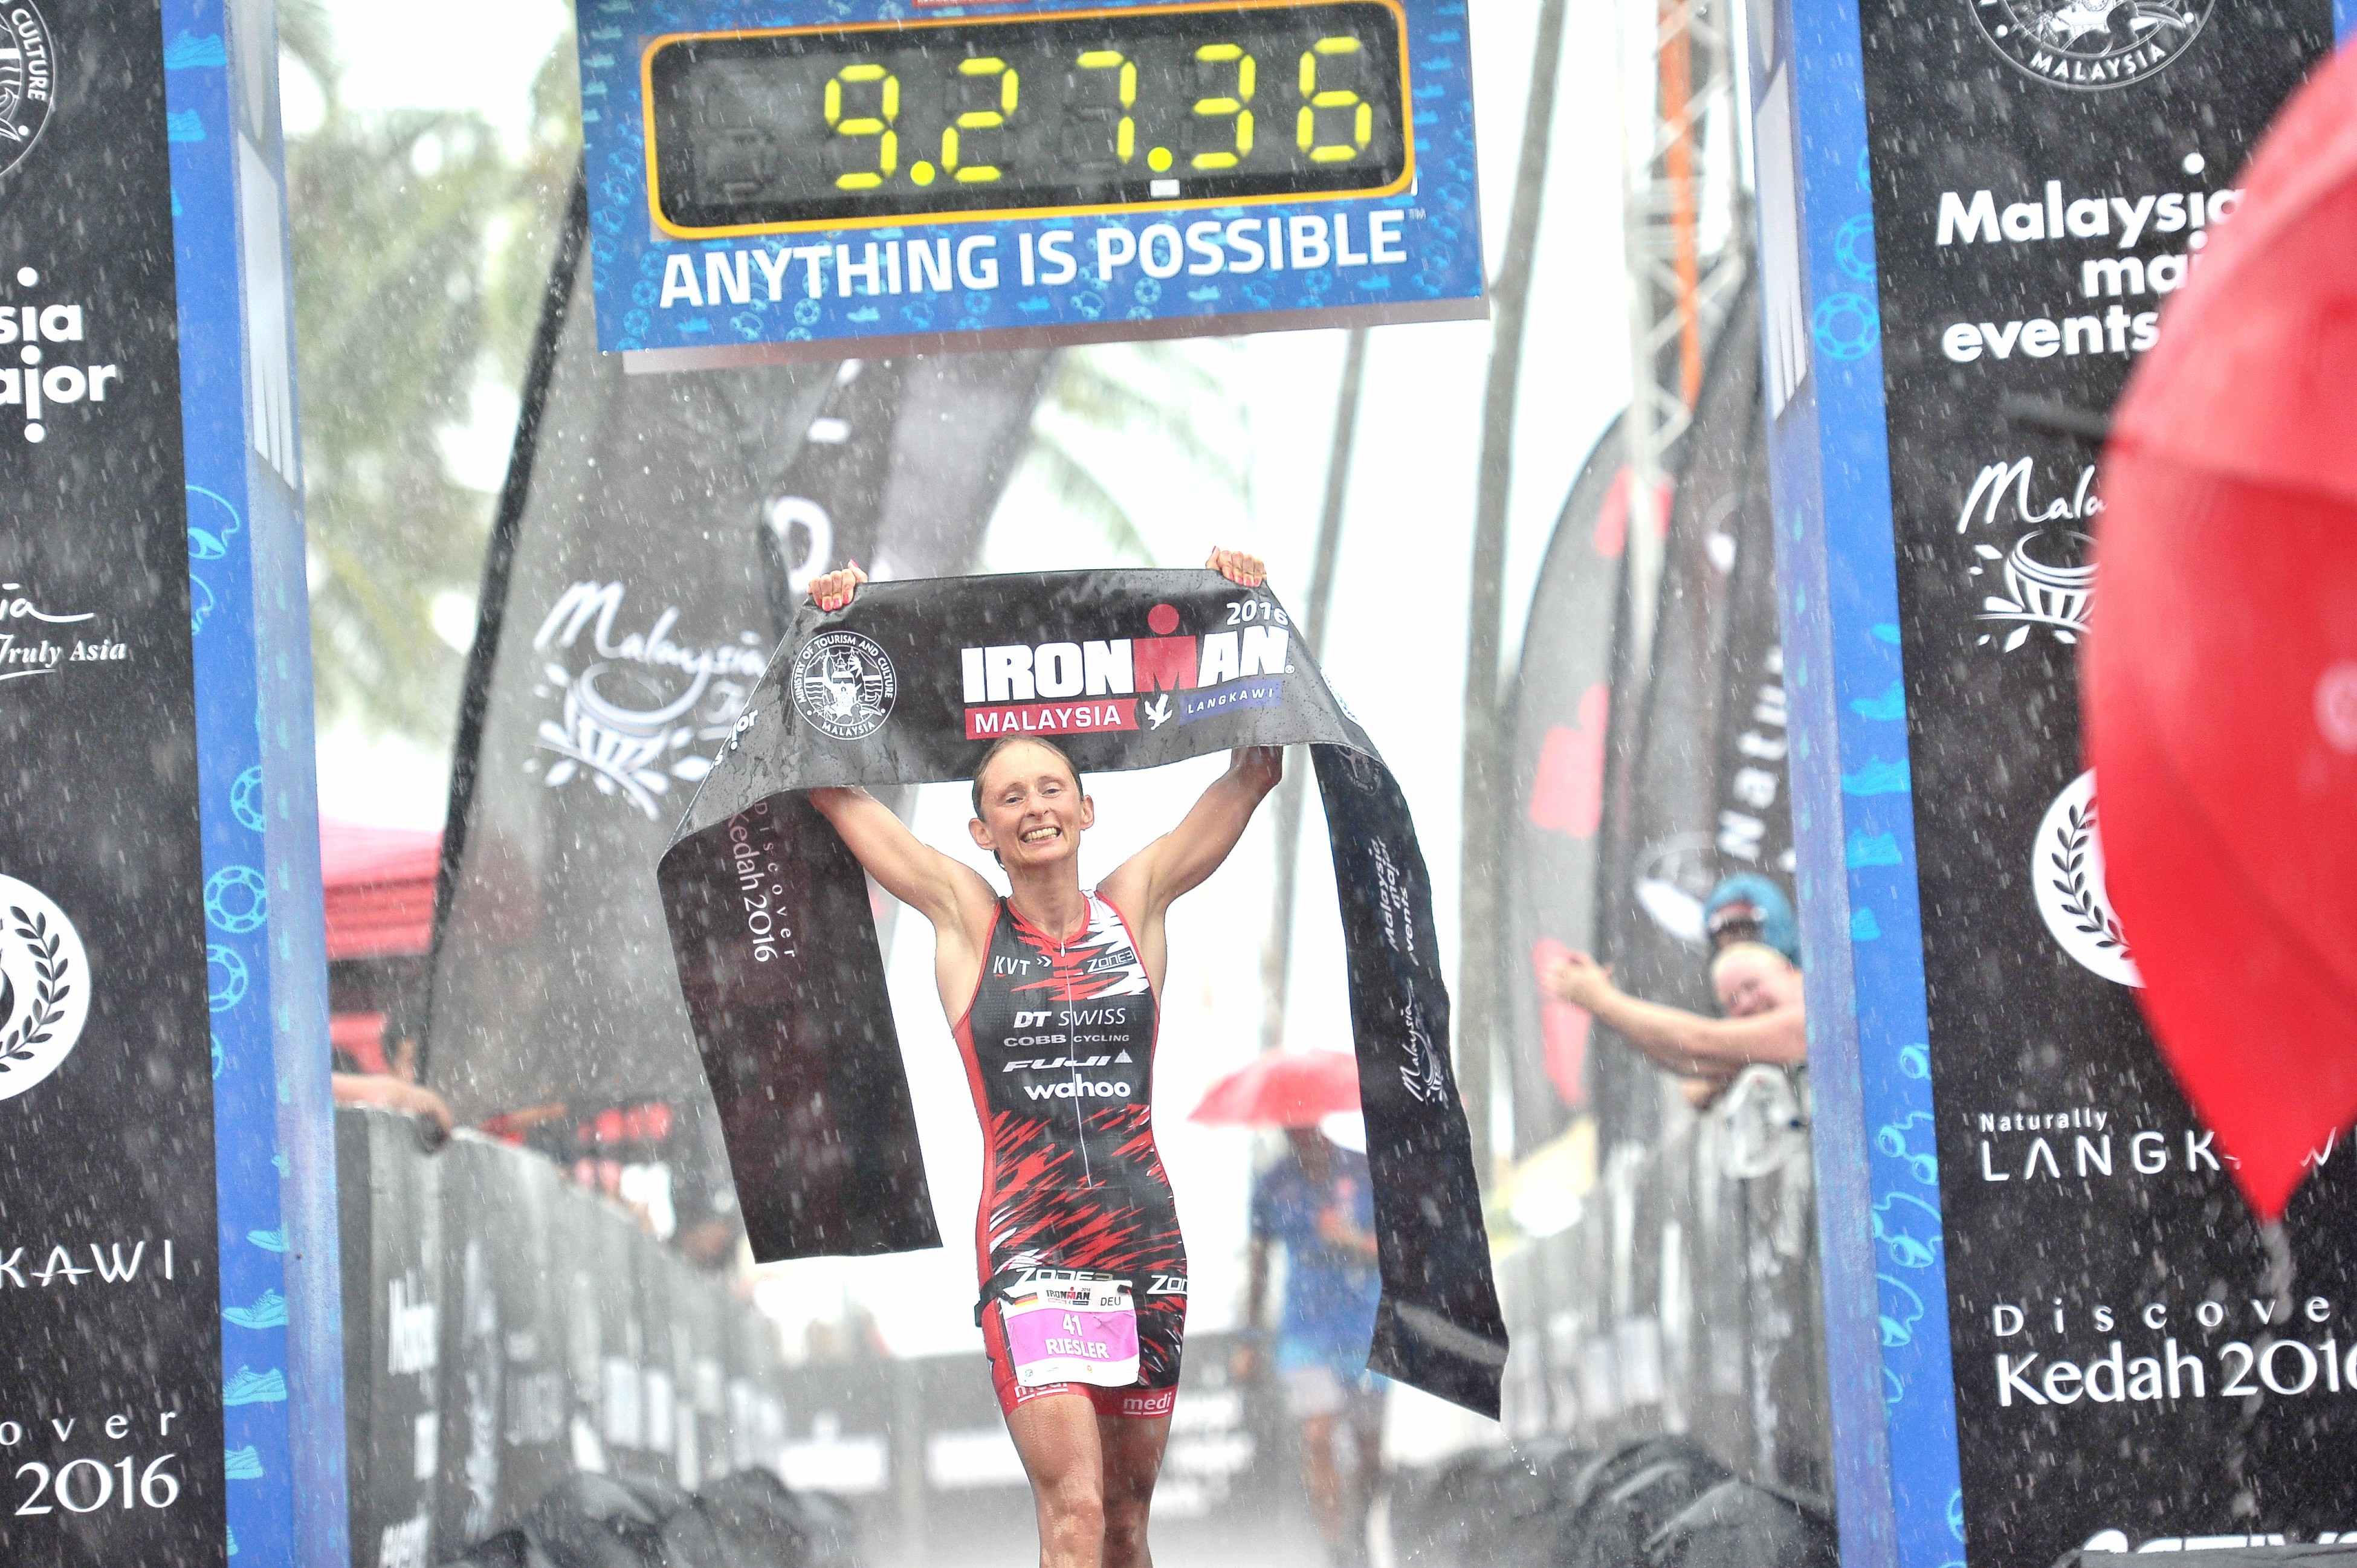 Diana Riesler wins Ironman Malaysia three times in a row.